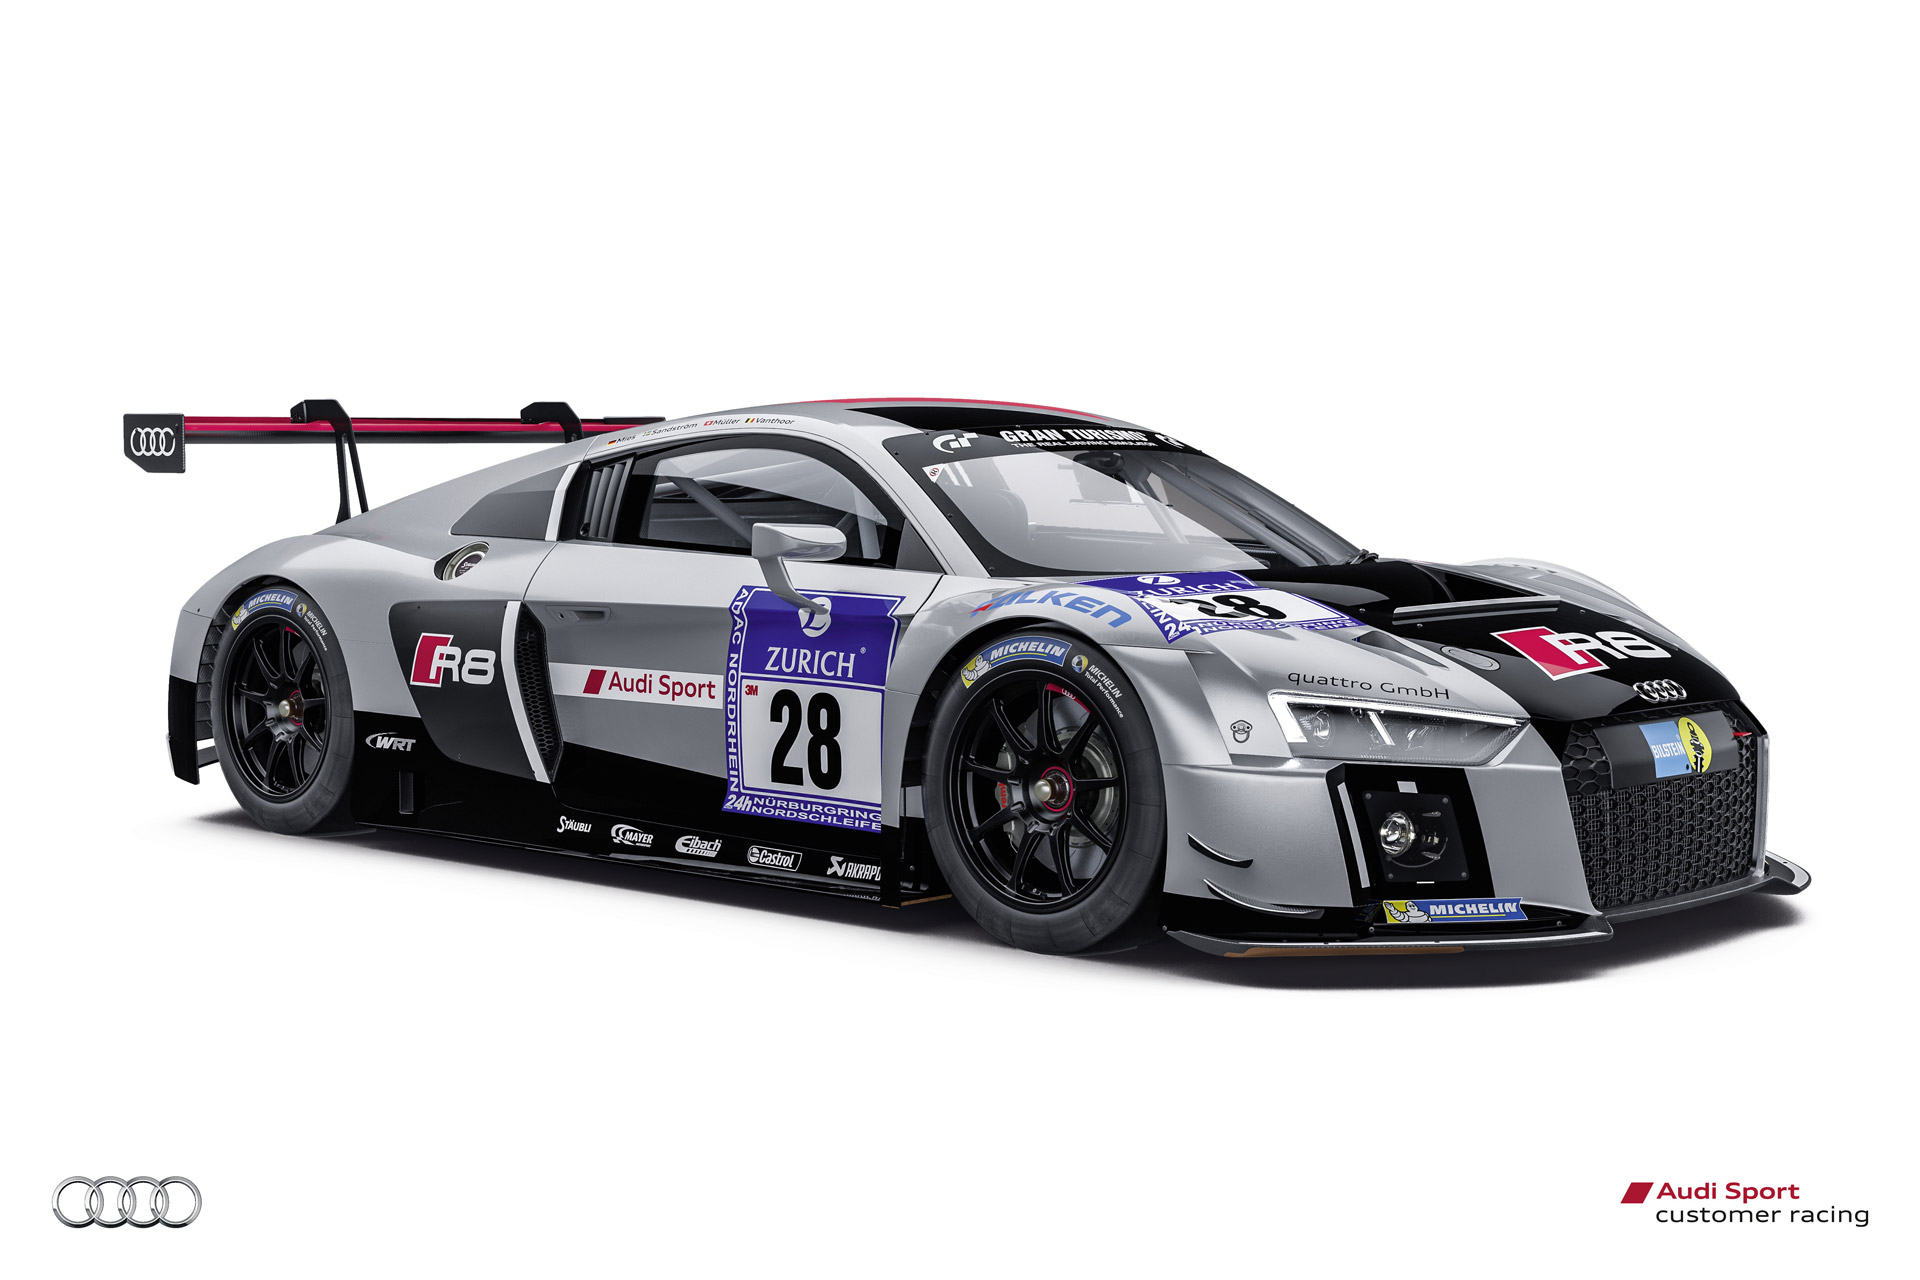 Bronco Cars Wallpaper New Audi R8 Lms Ready For 2015 N 252 Rburgring 24 Hours Race